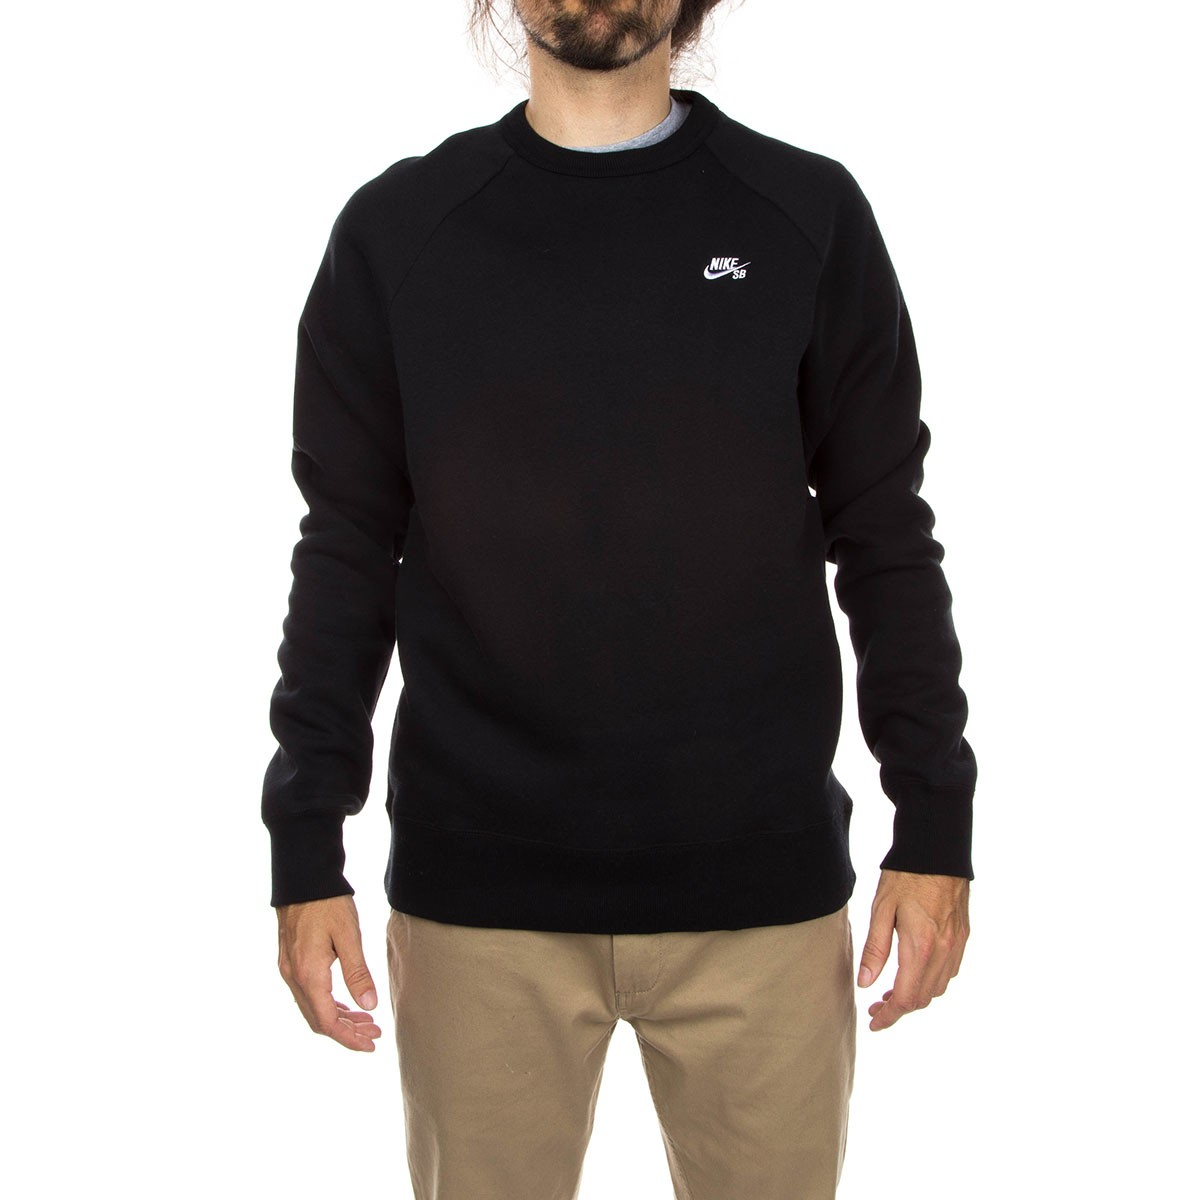 ec3f580c nike-sb-icon-crew-fleece-sweatshirt-black-white-md-1.1506663002.jpg